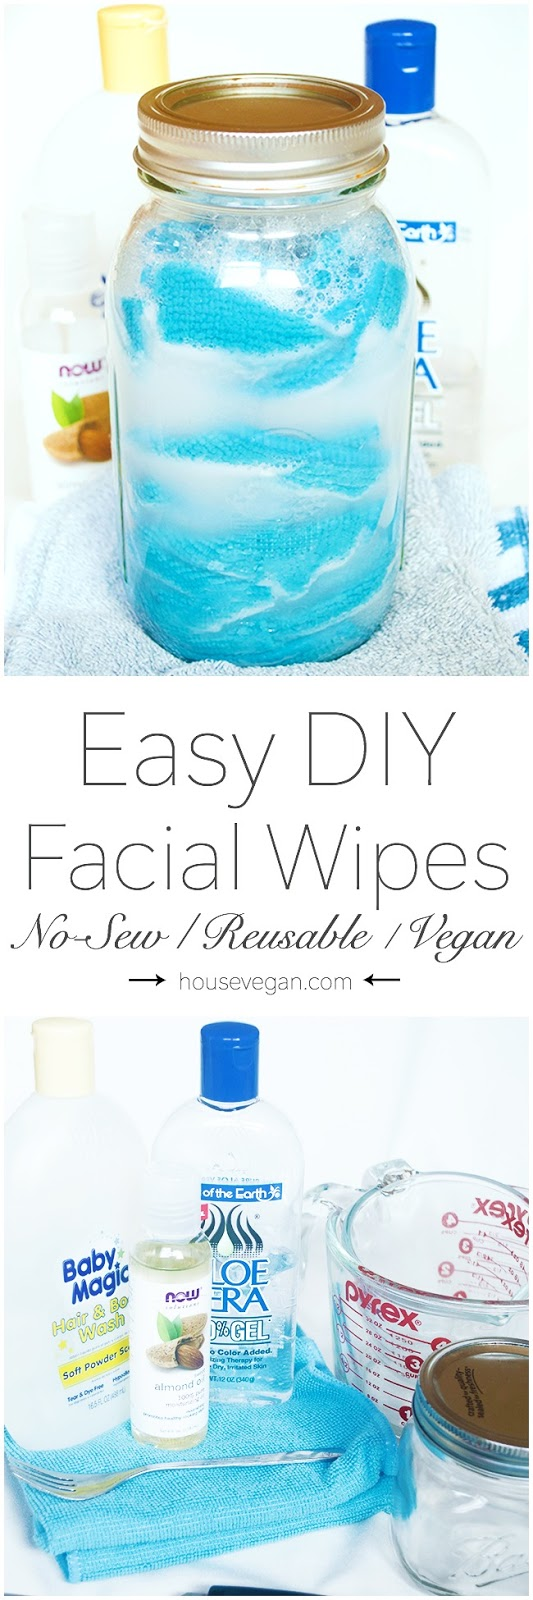 diy reusable face wipes, diy face wash wipes, diy face wipes coconut oil, homemade cloth face wipes, homemade face cleansing wipes, homemade face wash wipes, homemade face wipes, homemade face wipes for sensitive skin, homemade face wipes recipe, homemade facial wet wipes, homemade facial wipes recipe, homemade hand and face wipes, homemade natural face wipes, homemade reusable face wipes, how to make homemade face wipes, make homemade face wipes, natural homemade face wipes, diy reusable face wipes, homemade reusable face wipes, how to make reusable face wipes, reusable face wipes, reusable facial wipes, vegan face wipes, vegan facial cleansing wipes, vegan facial wipes, cruelty free face wipes, cruelty free facial cleansing wipes